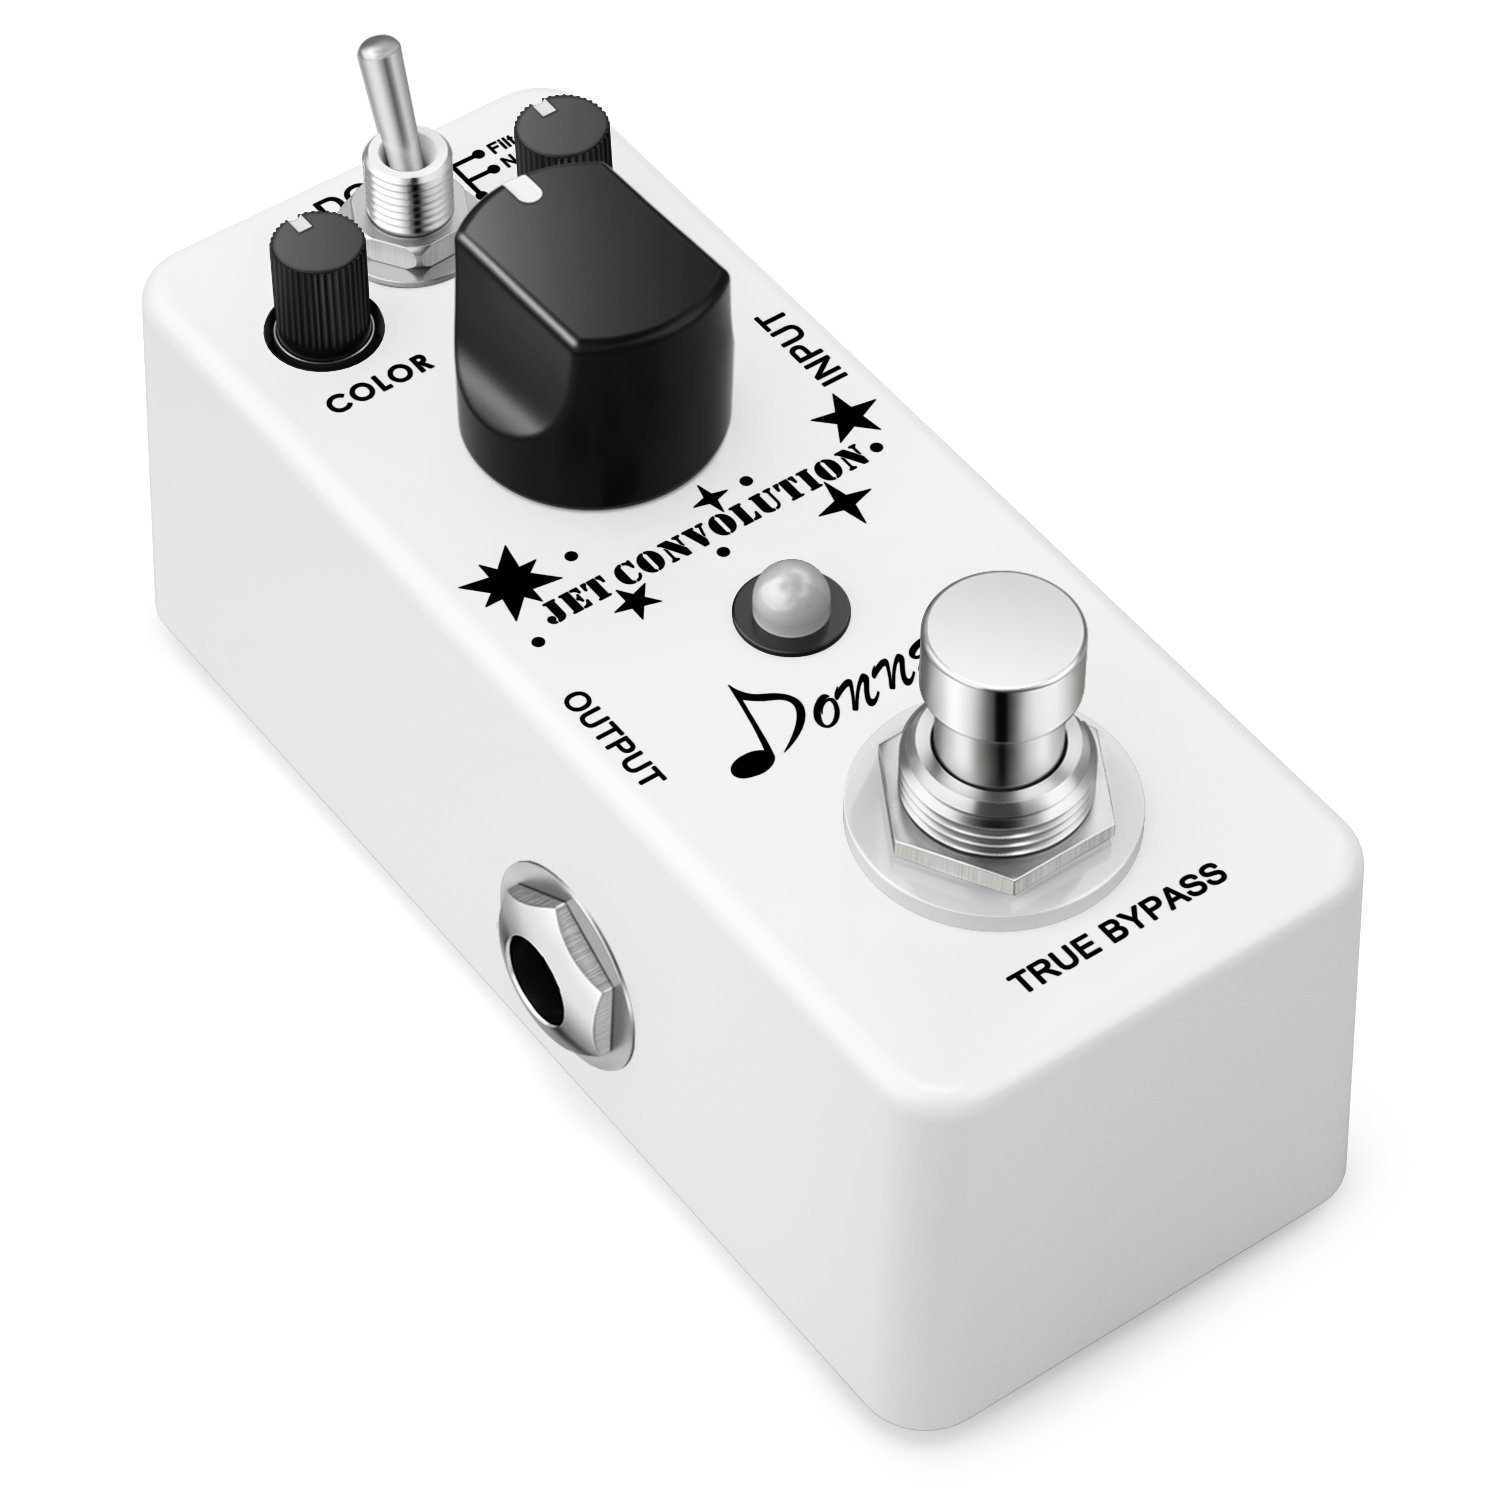 Donner Jet Convolution Flanger Classical Analog Rolling Guitar Effect Pedal 2 Modes by Donner